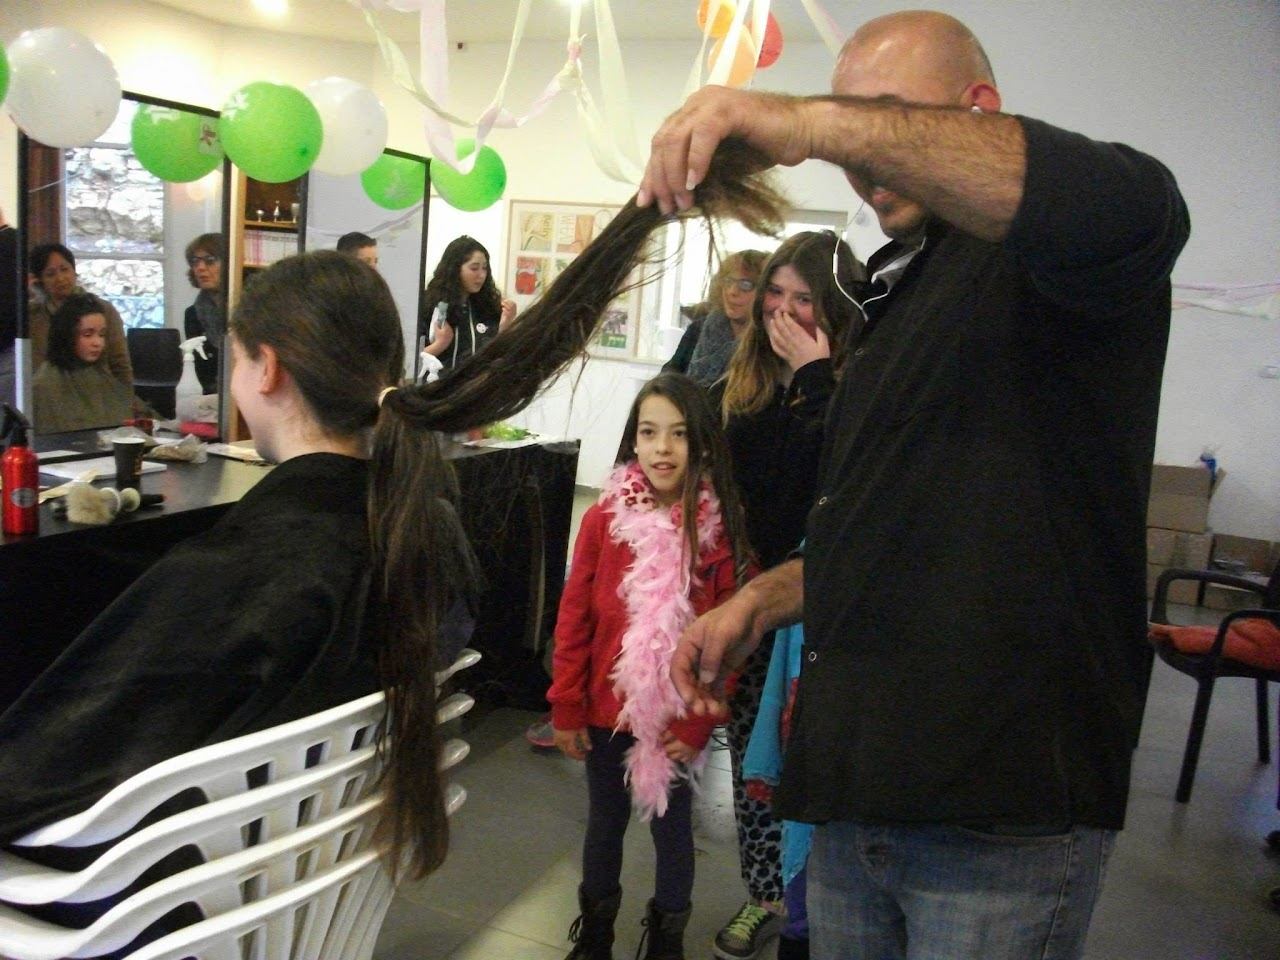 Donating hair for cancer patients 2014  - 10003841_539677266148571_67611622_o.jpg